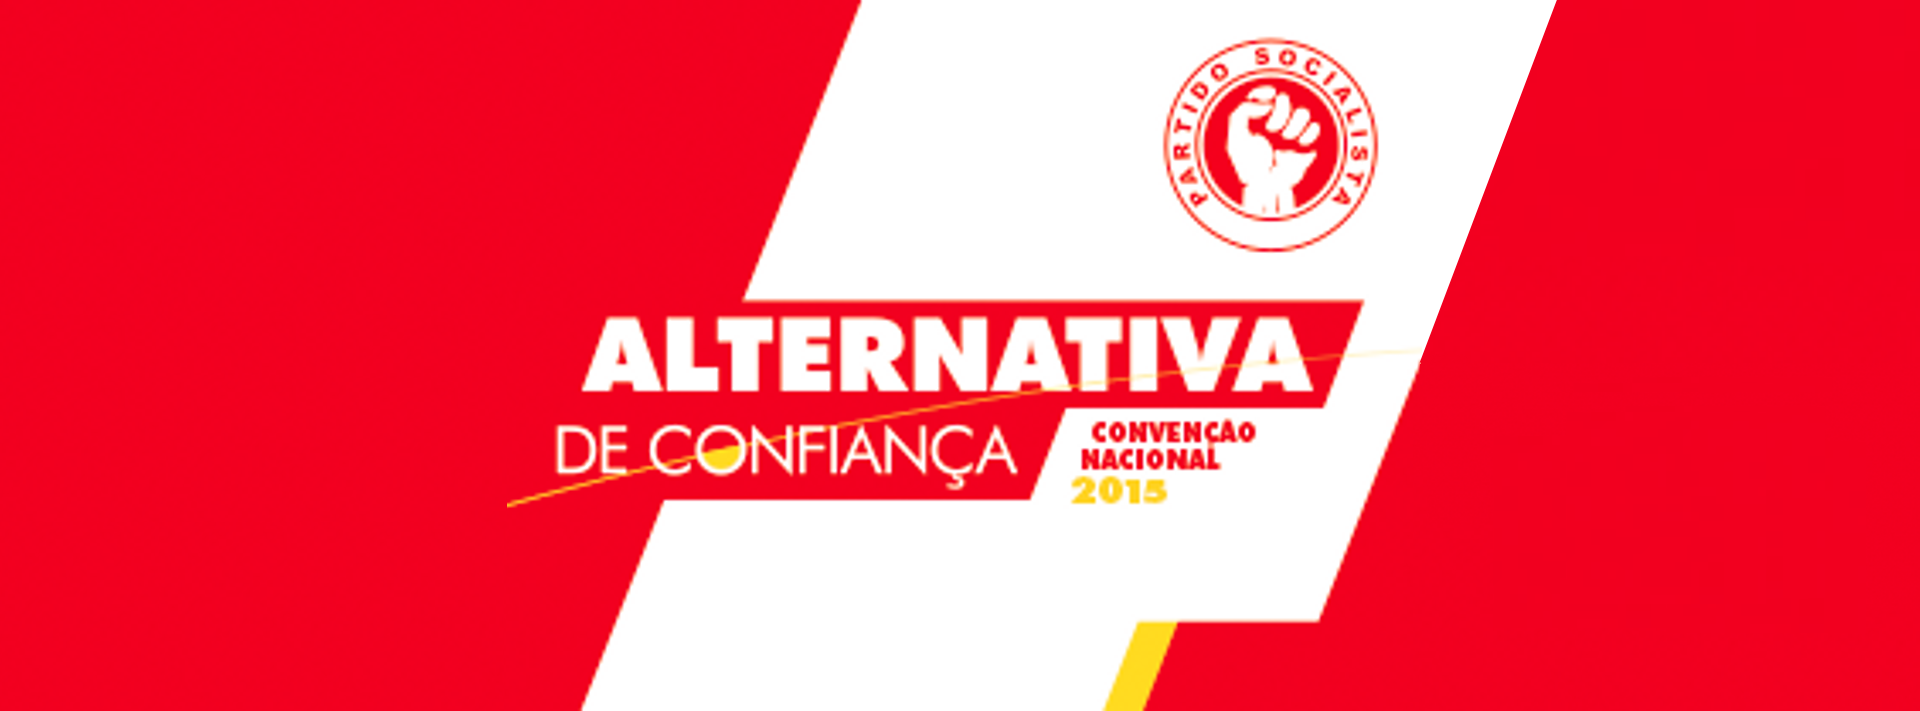 Capa - Convenção Nacional do PS - Alternativa de Confiança